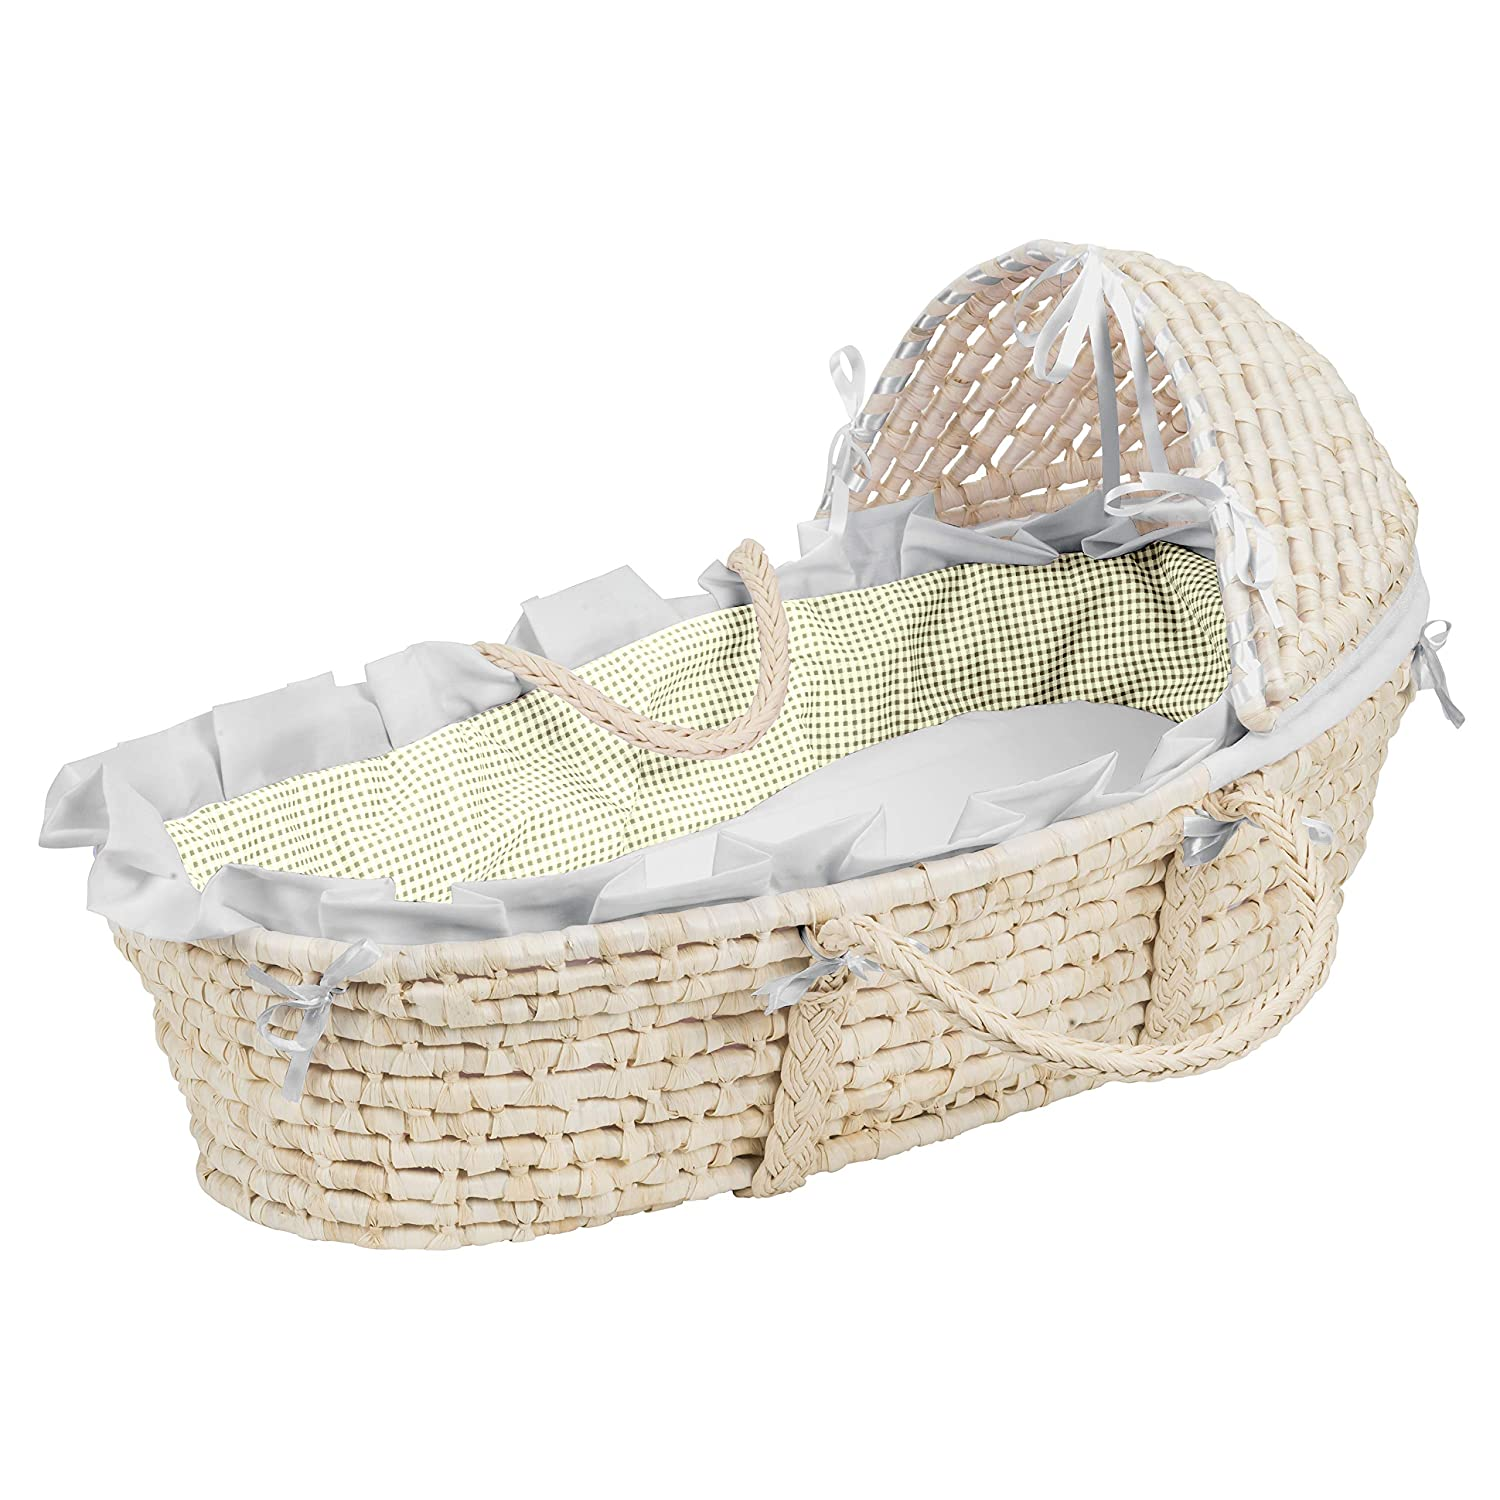 B0003008A4 Hooded Baby Moses Basket with Liner, Sheet, and Pad 81SLbpCa2BrL